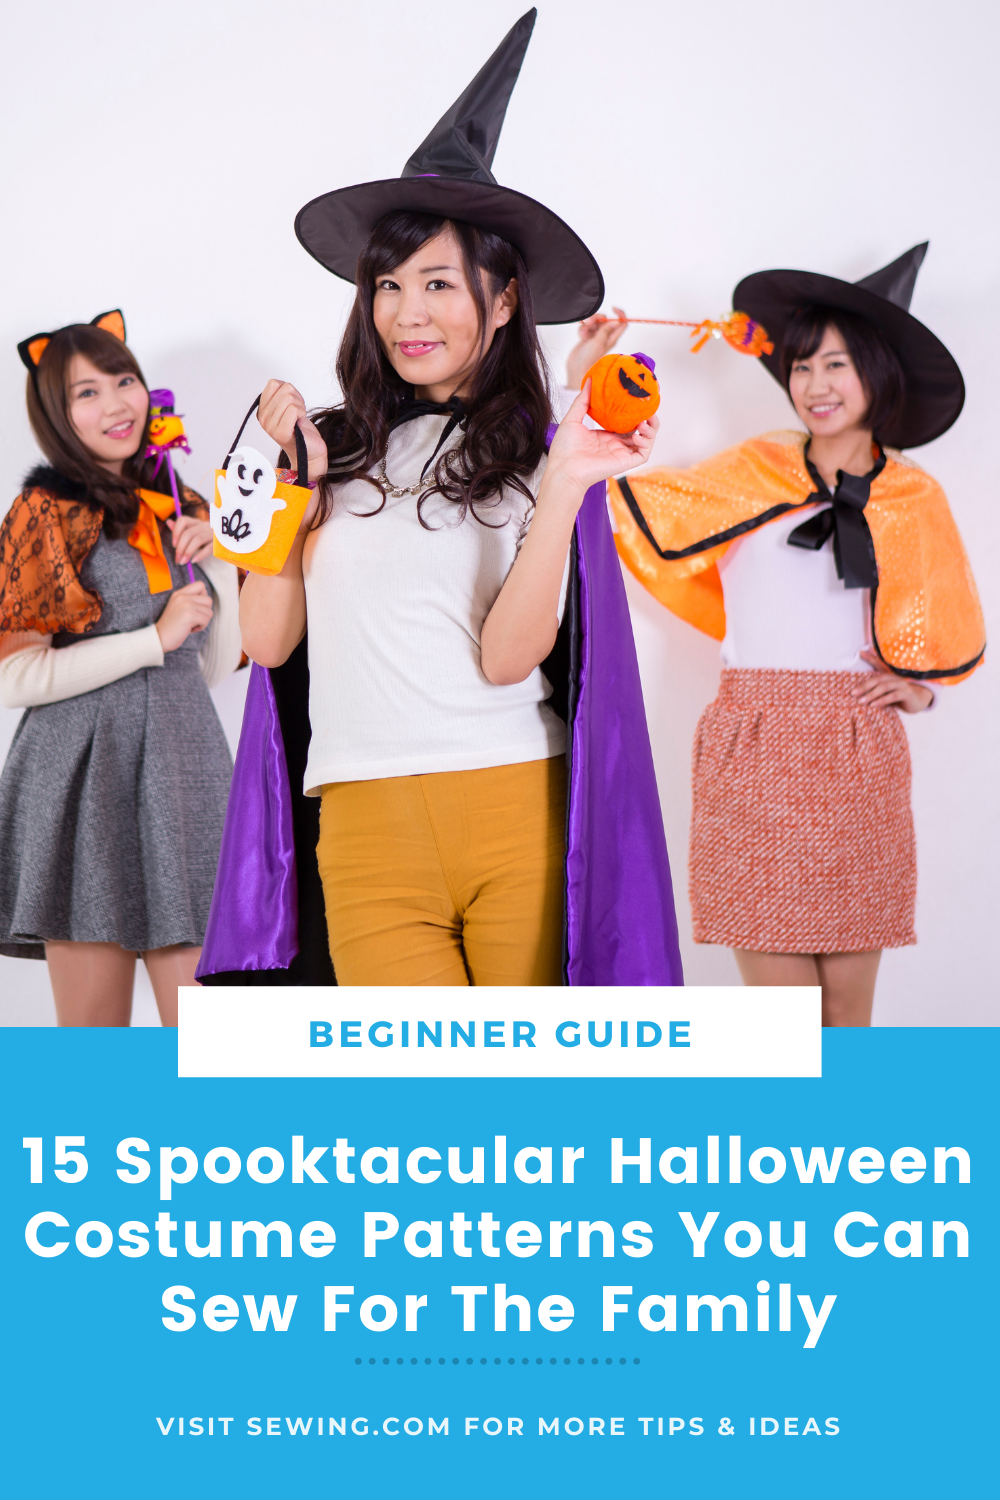 placard | 15 Spooktacular Halloween Costume Patterns You Can Sew For The Family